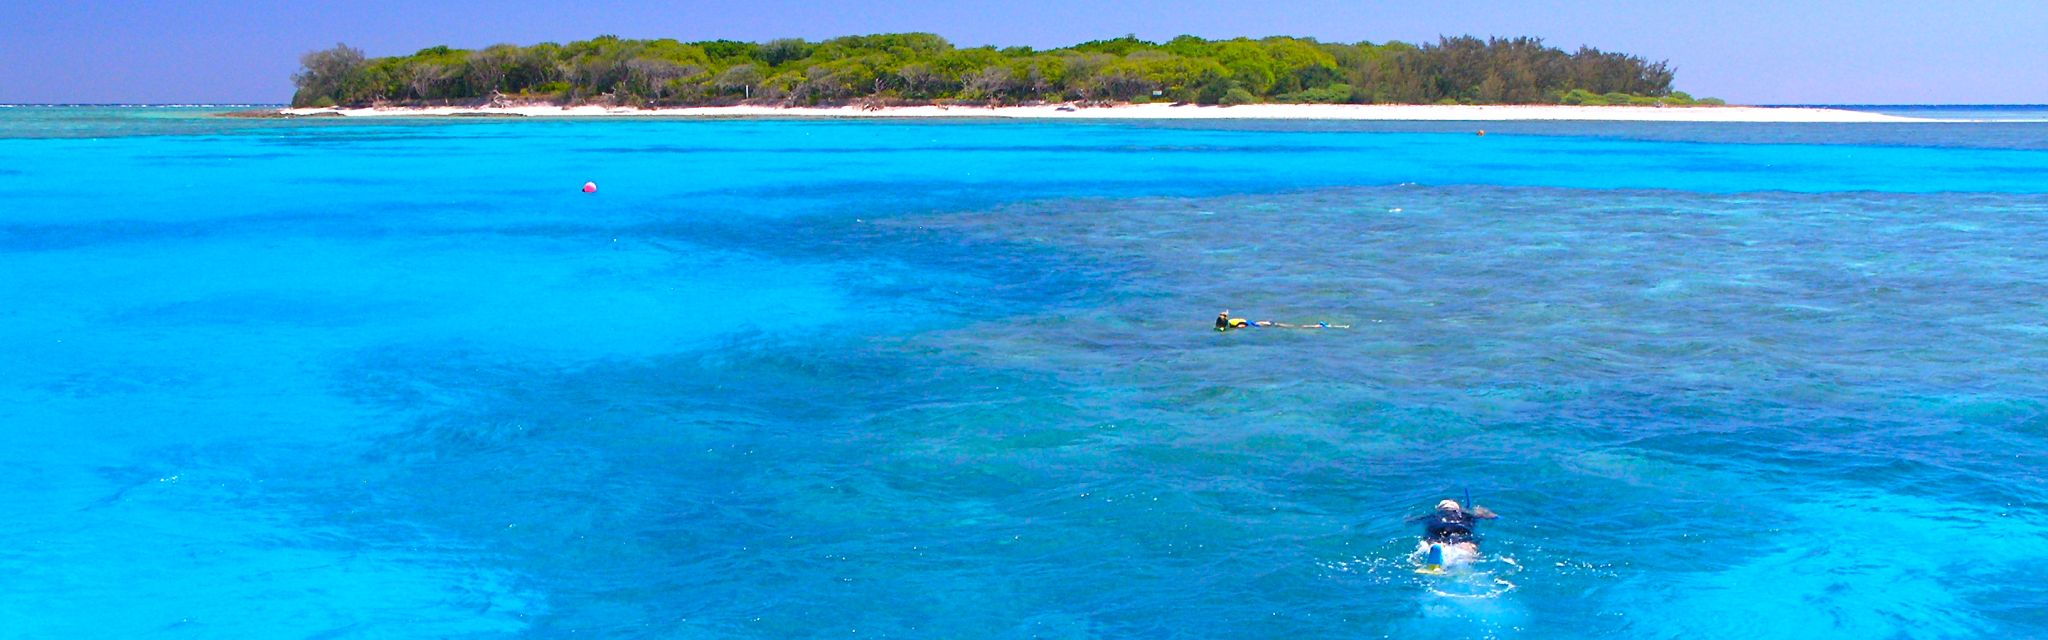 Reef Snorkelling Lady Musgrave Island, image from a Nature Bound Australia Tour